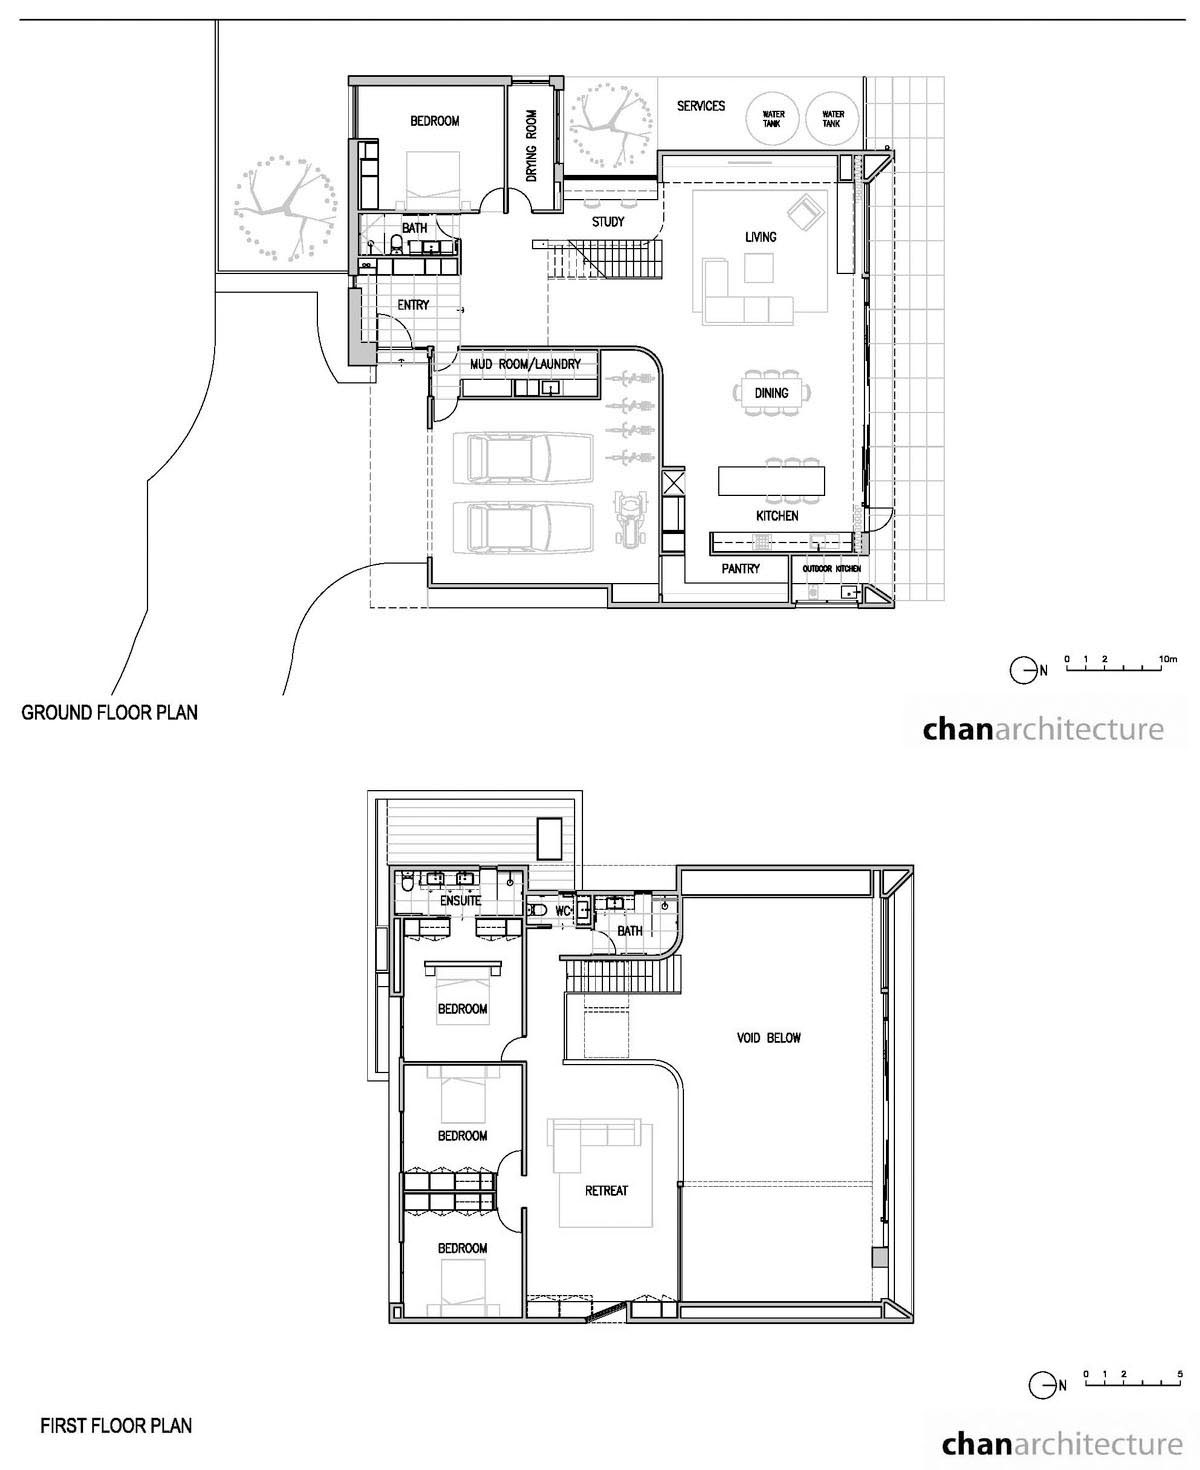 The floor plan of a modern home that has two levels.